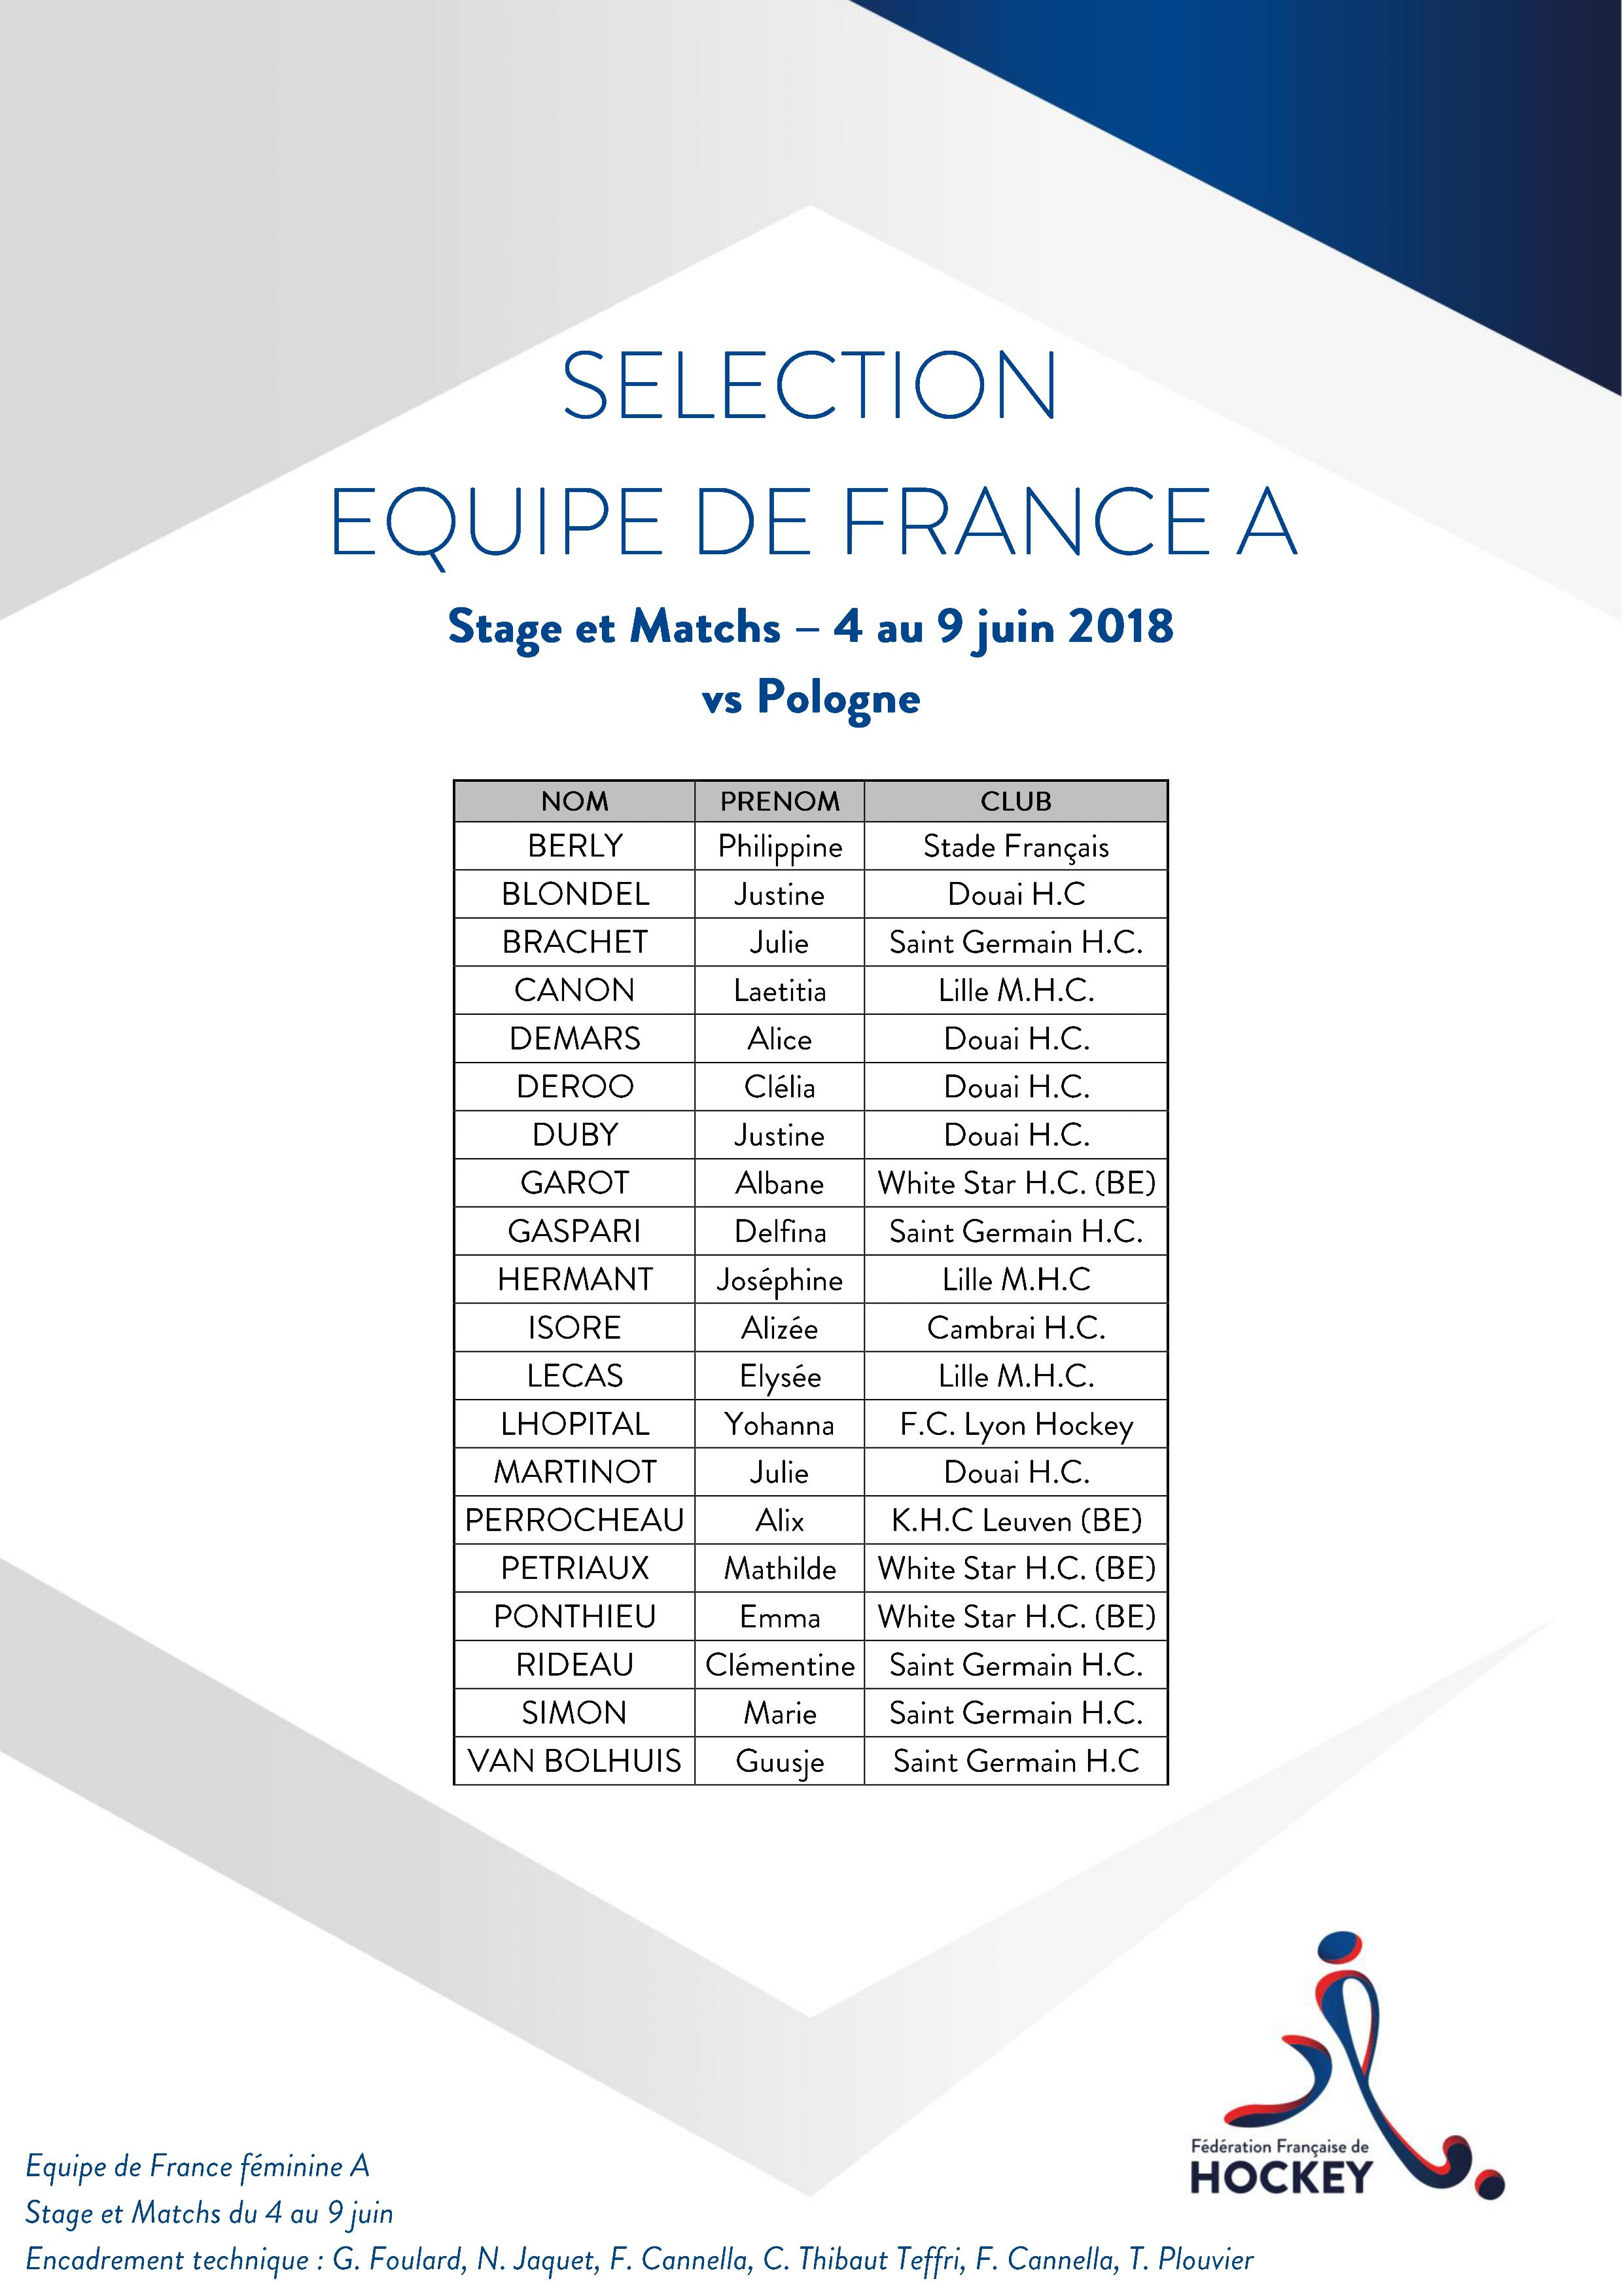 SELECTION EQUIPE DE FRANCE Wattignies 4 au 9 juin vs POL